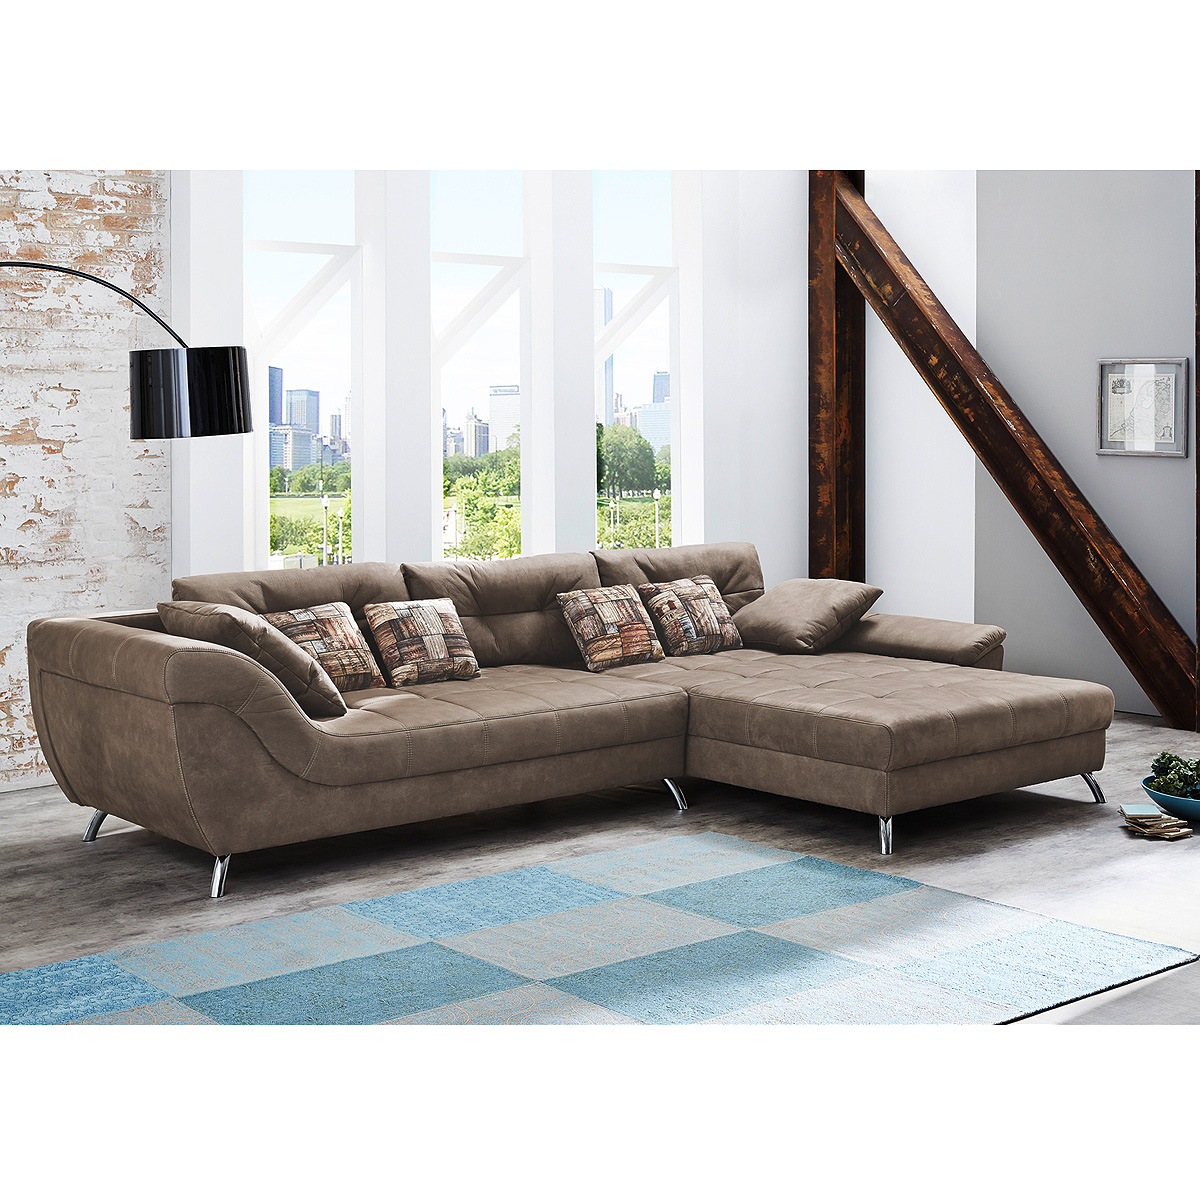 wohnlandschaft san francisco sofa l sofa ecksofa mit polsterung in antikbraun ebay. Black Bedroom Furniture Sets. Home Design Ideas